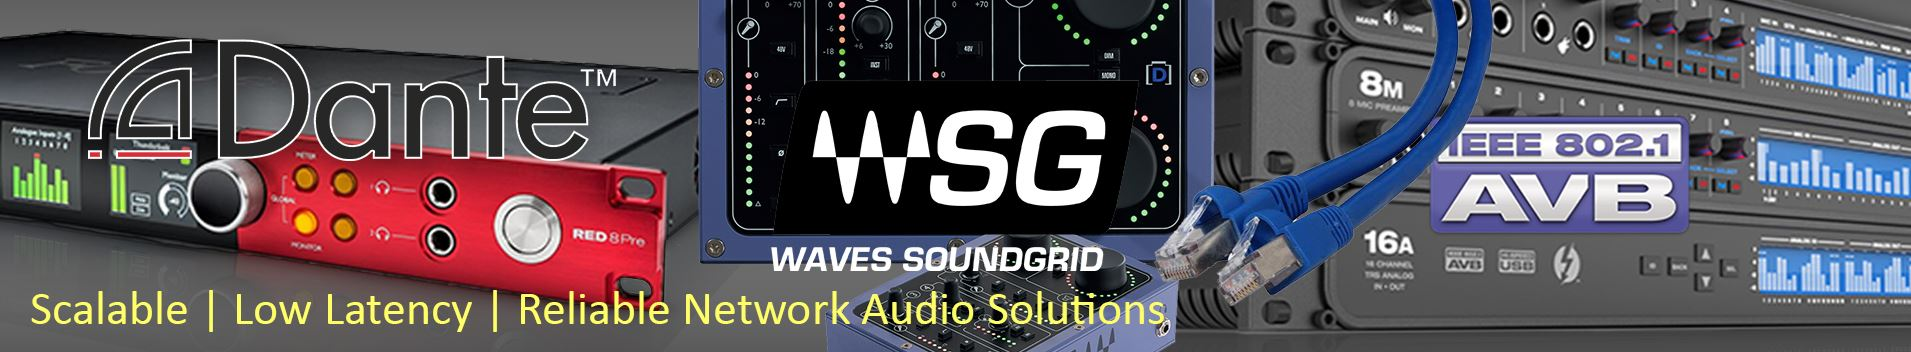 Network Audio Solutions - Dante, SoundGrid and AVB. We offer full integration with DANTE and SoundGrid technologies with any of our computer systems